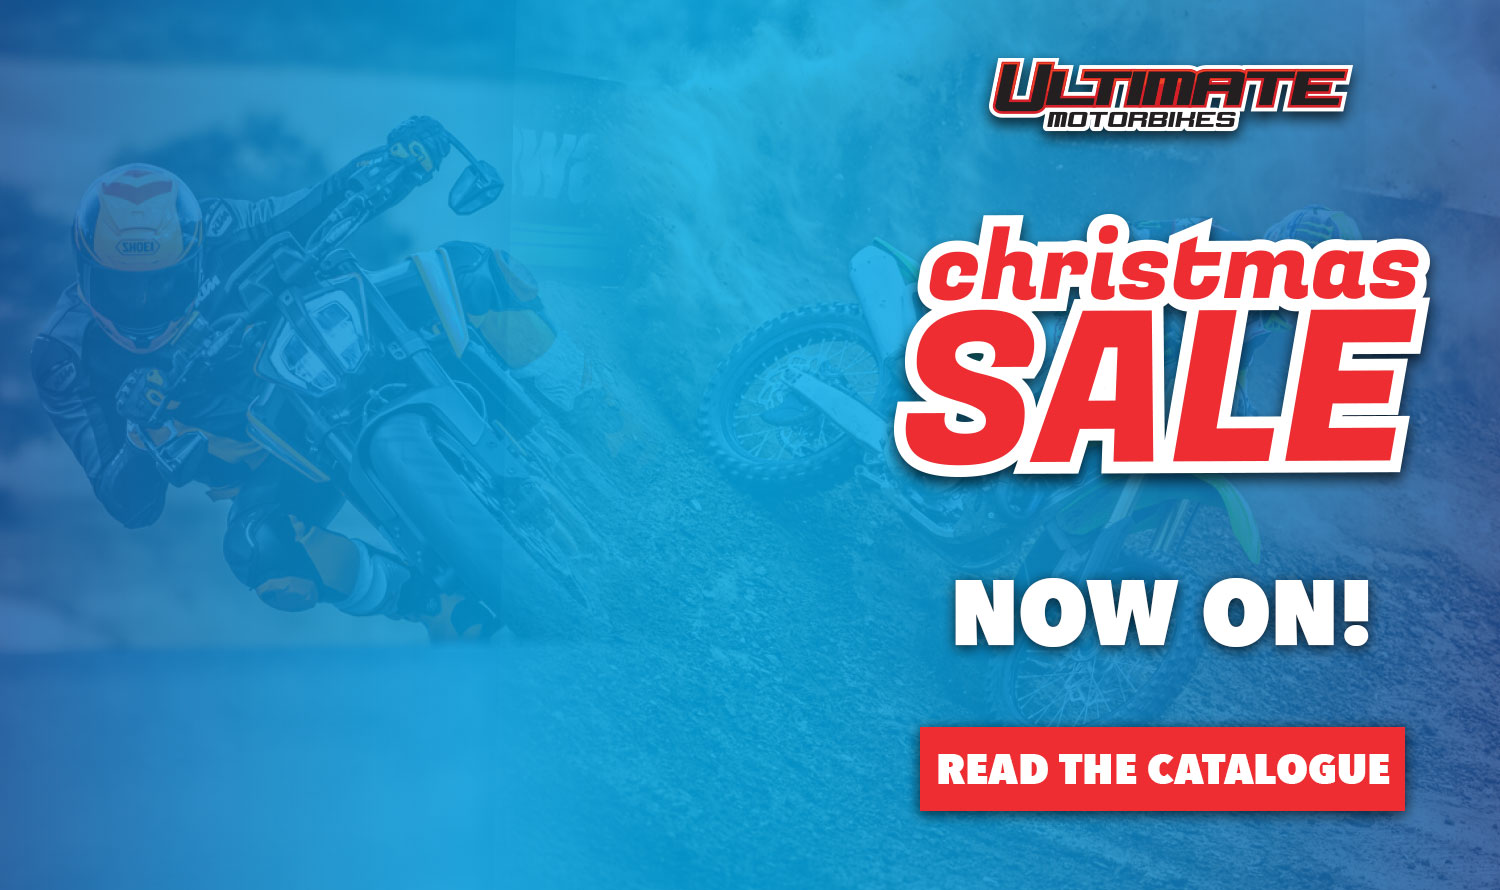 UltimateMotorbikes-HPB-ChristmasSale-Dec18-MR